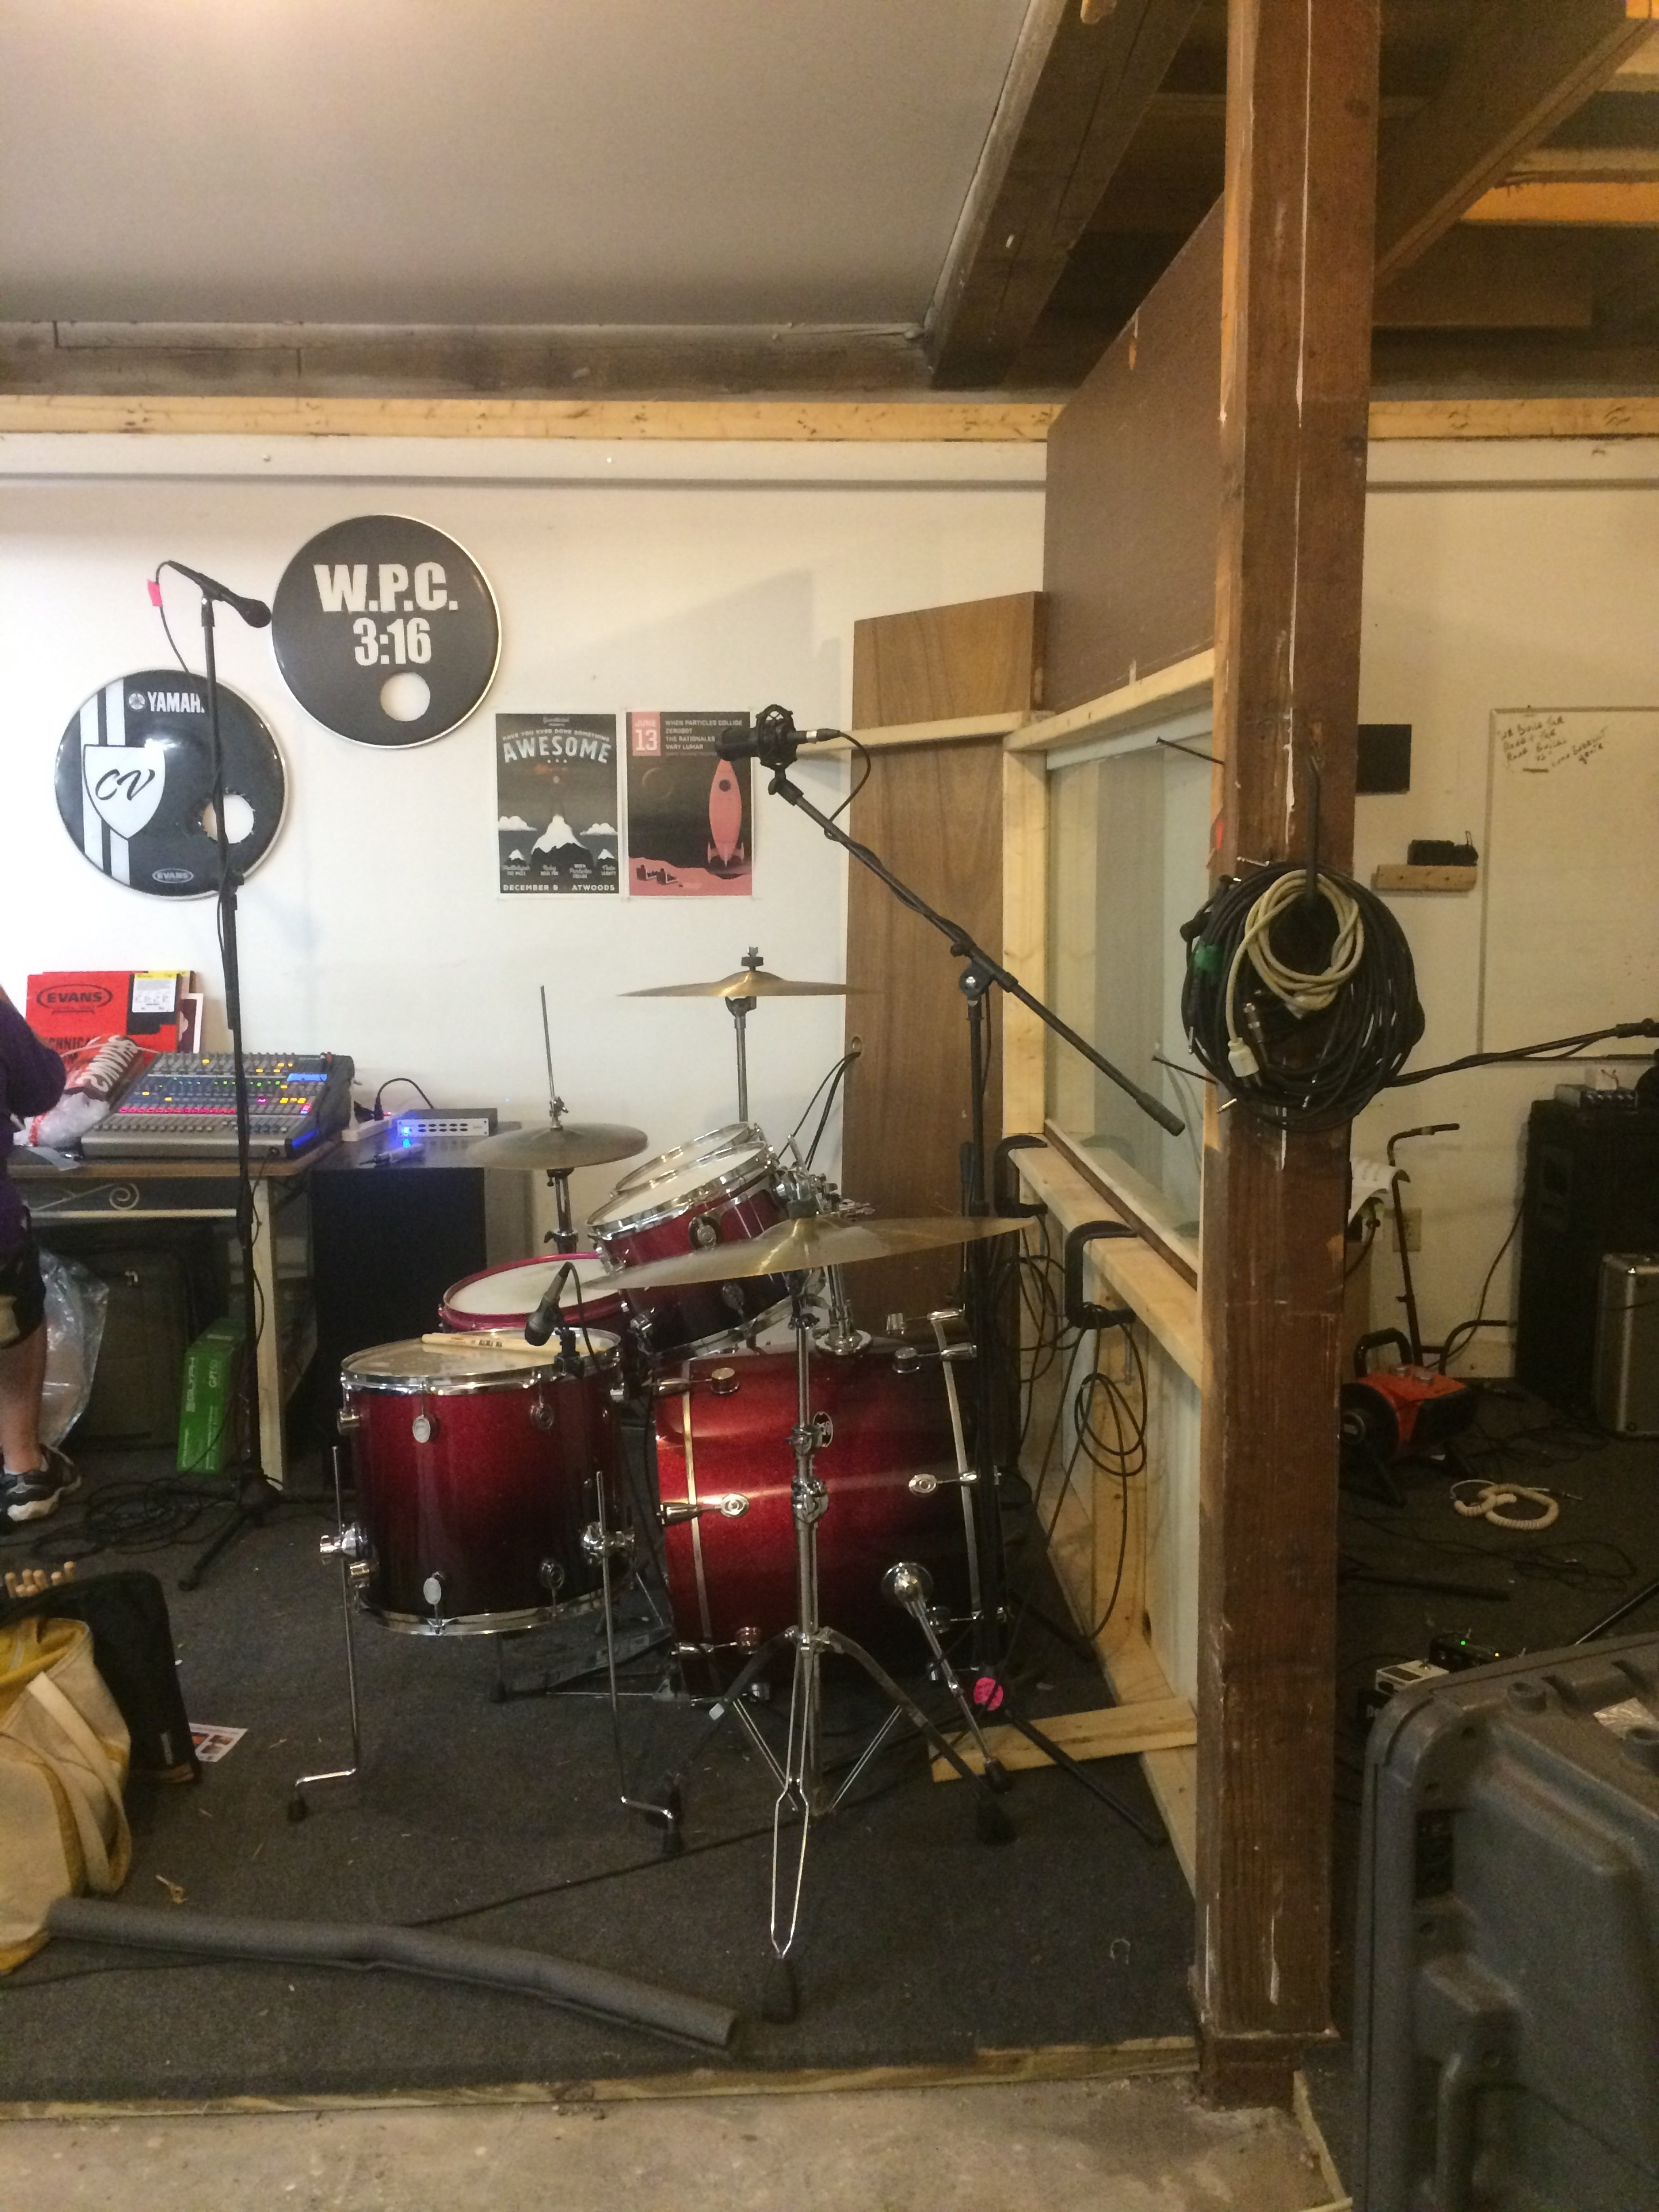 When Particles Collide's practice/ recording space